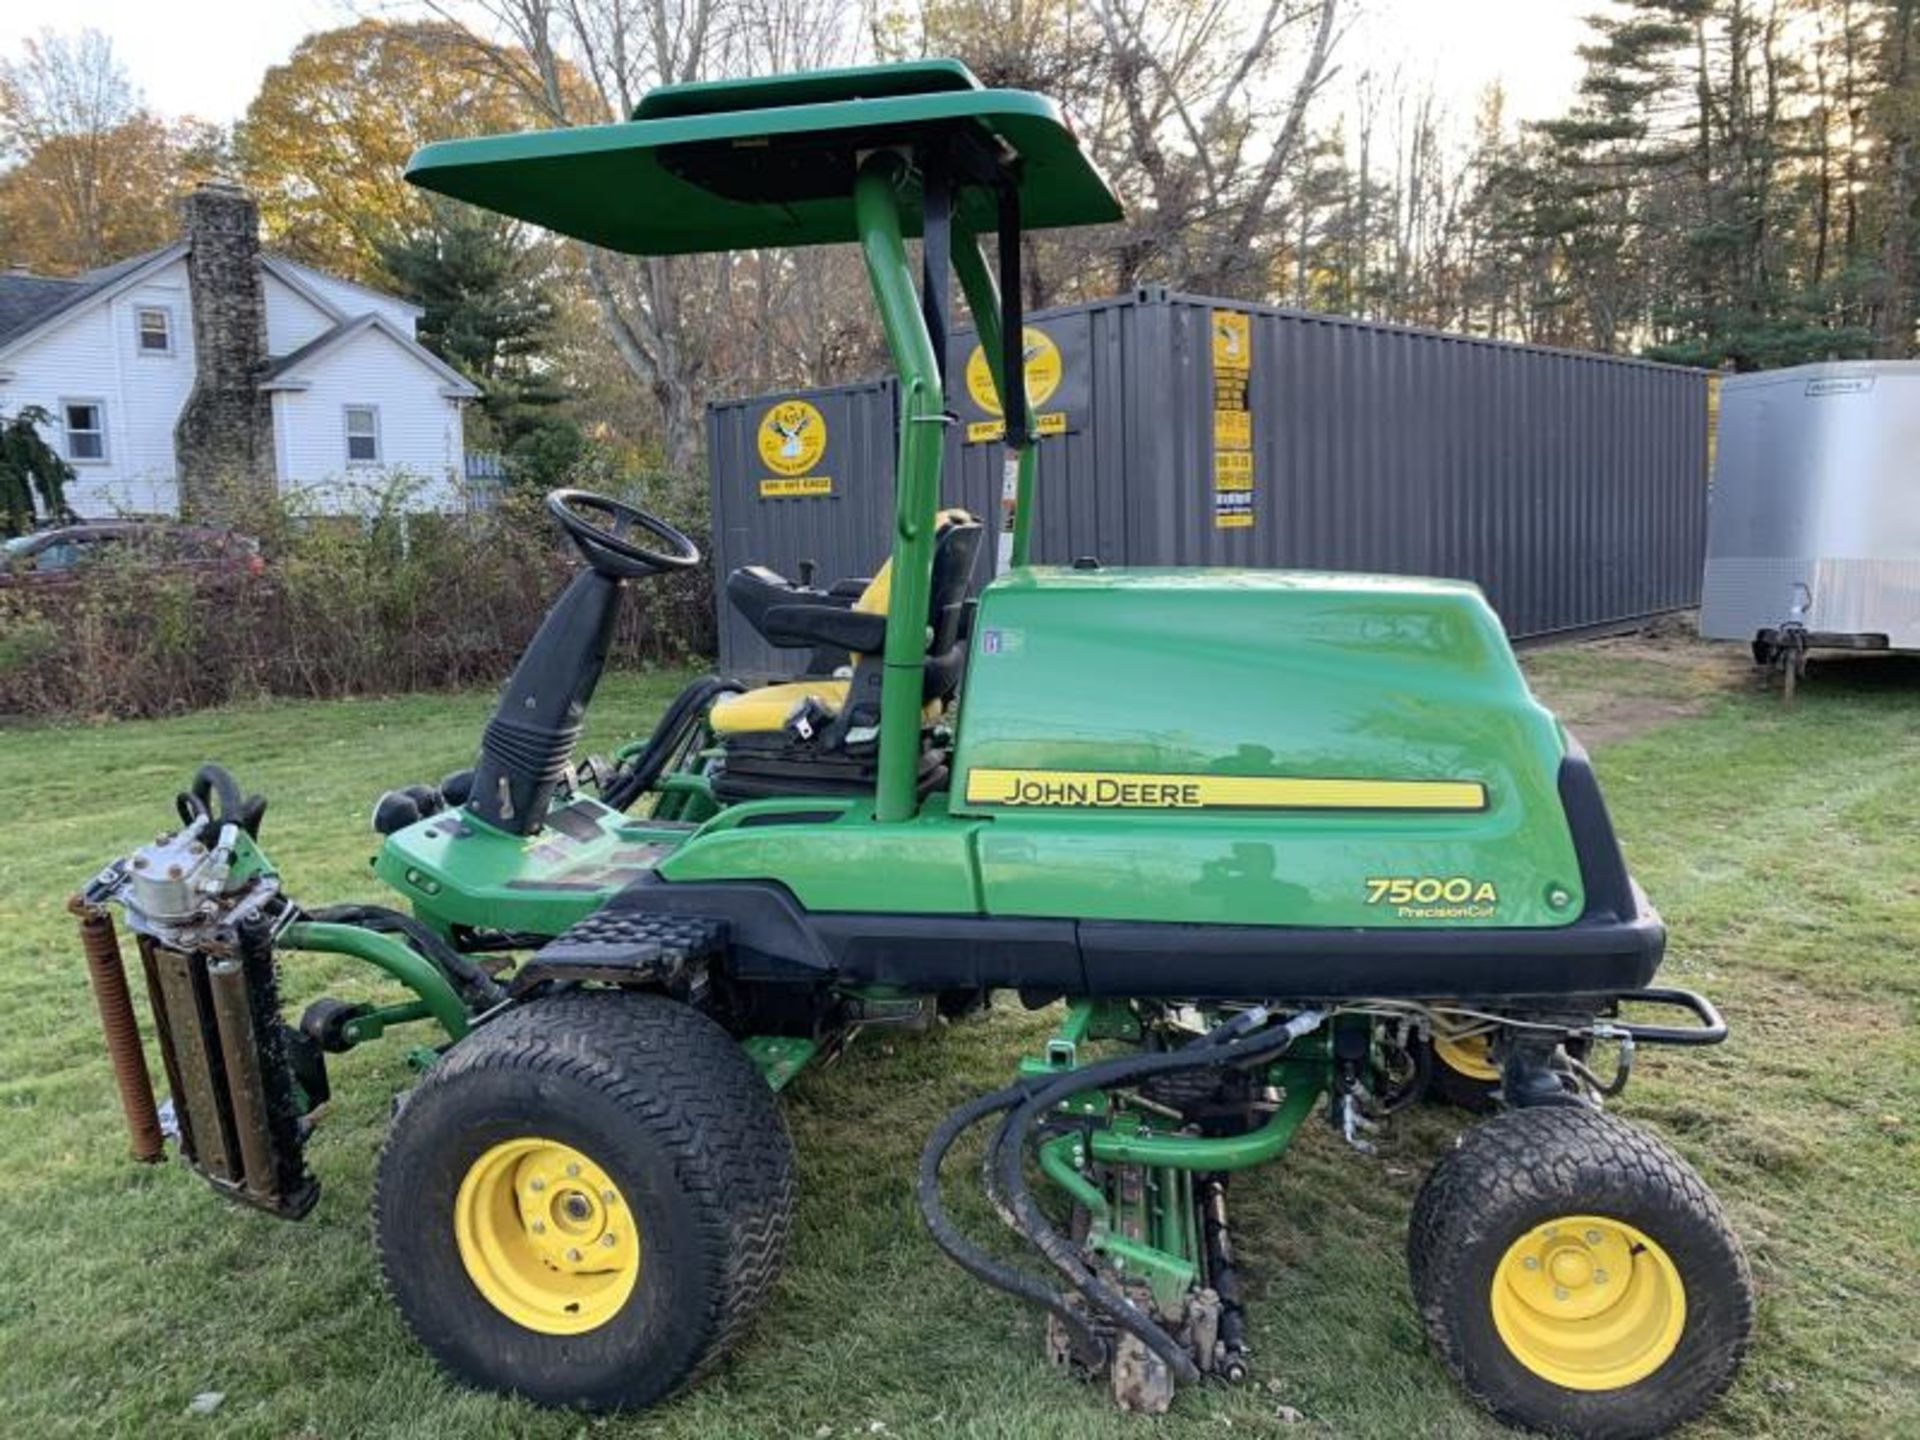 2016 John Deere 7500A Precision Cut 2WD T4, 2,355 Hours, SN: 1TC750AVLGR030141 - Image 15 of 17